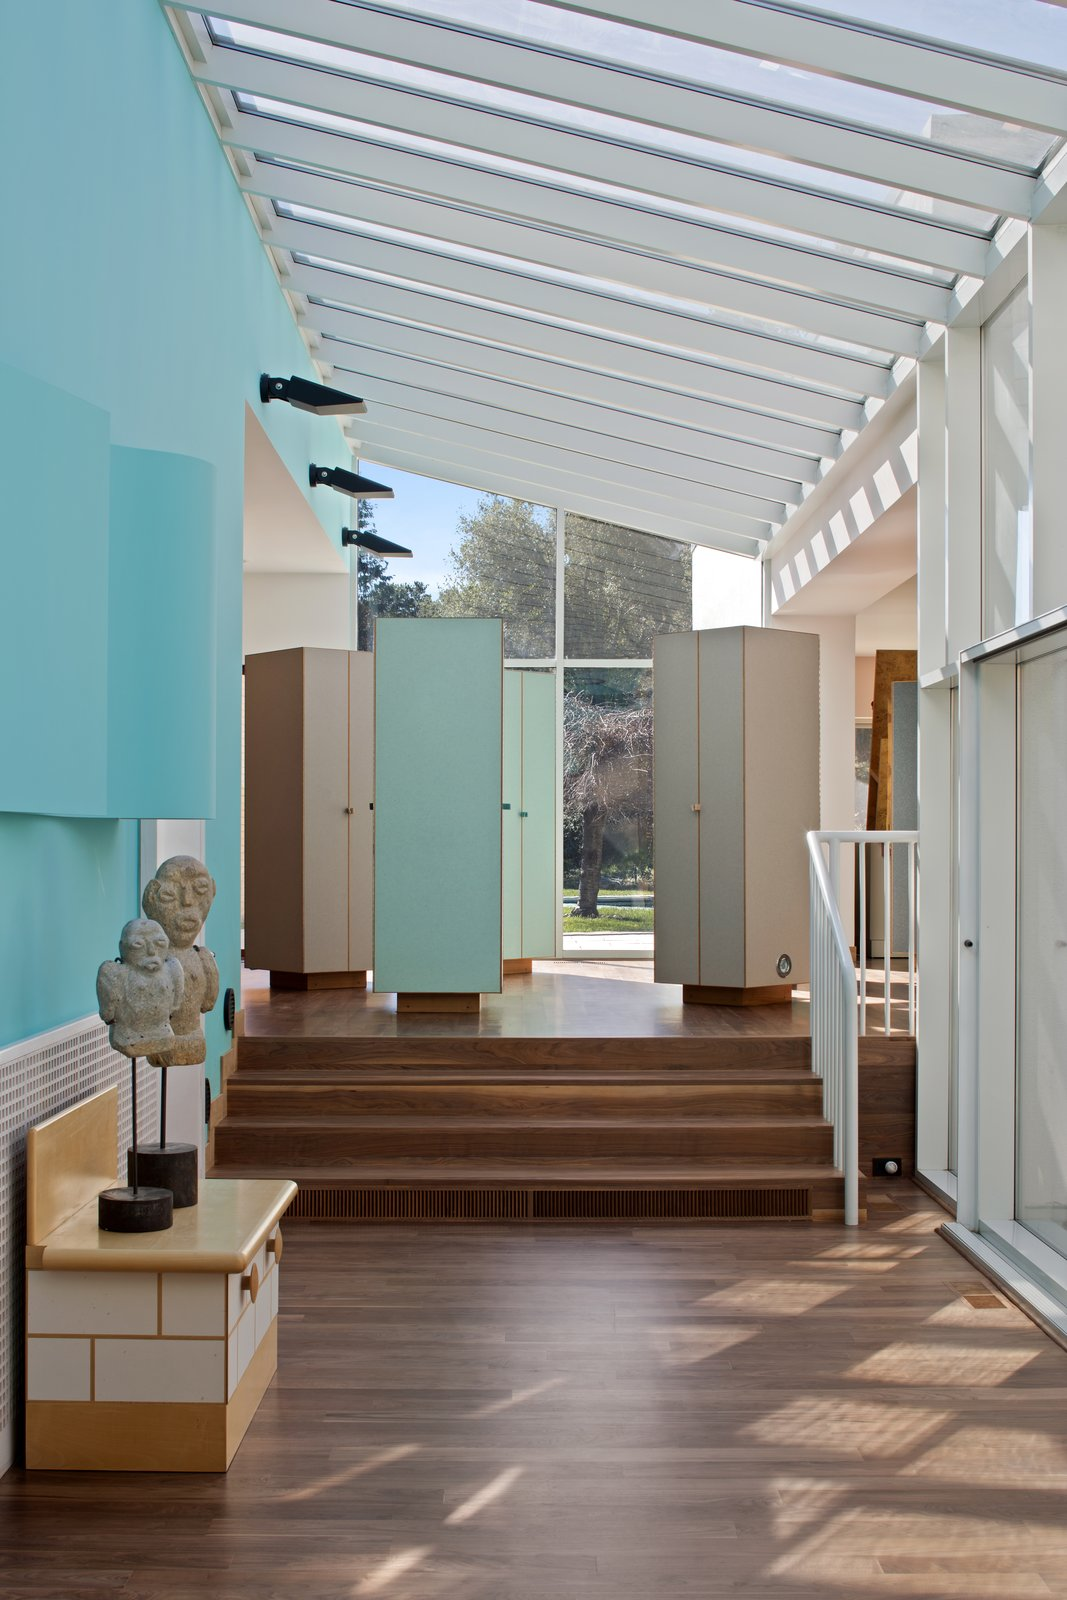 A glass atrium holds together four of the six pavilions that make up the home. Sottsass considered hallways to be unimaginative, preferring to create a flexible village of connected spaces.